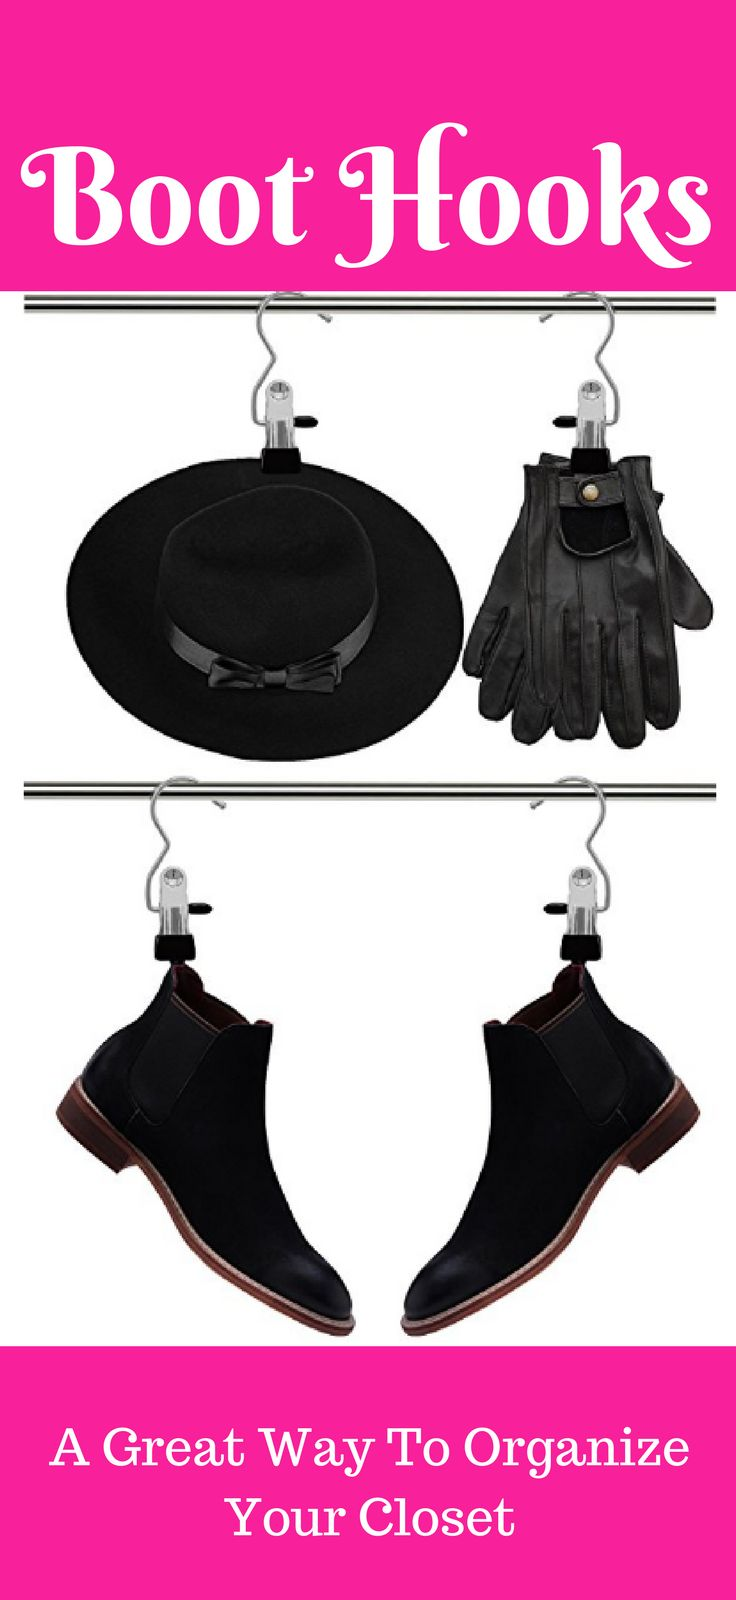 Looking for ways to organize your closet? Look no further. Boot hooks are a great organizational too. You can use them to hang your hats, gloves,  boots, jeans/pants, purses etc.